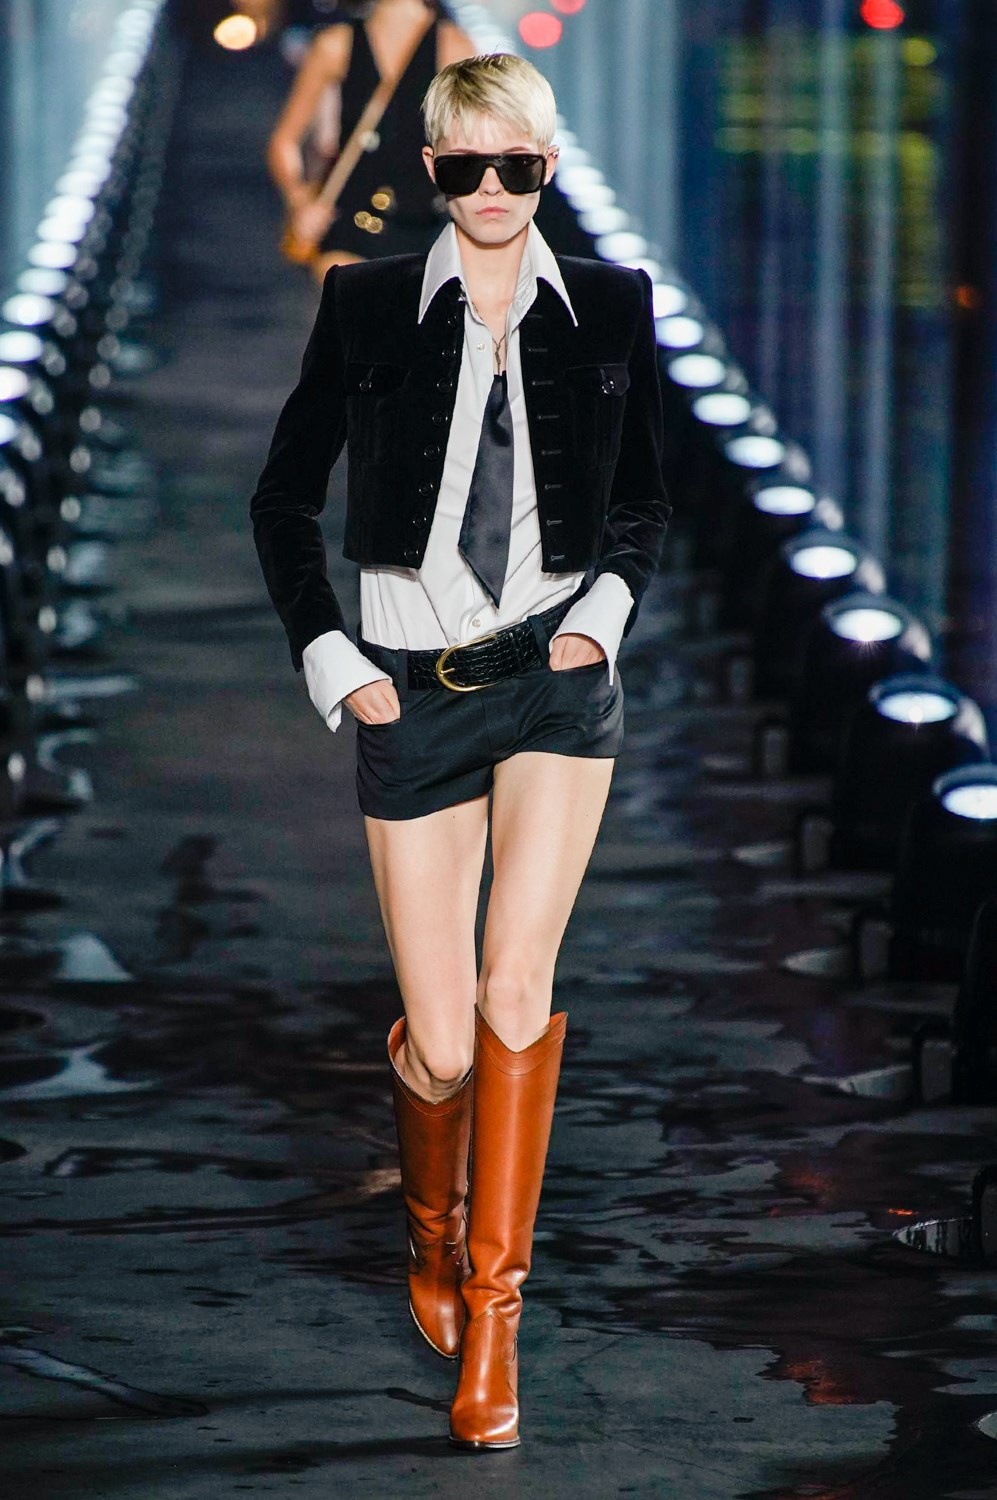 Top 20 Most Popular Runway Models of Spring 2020